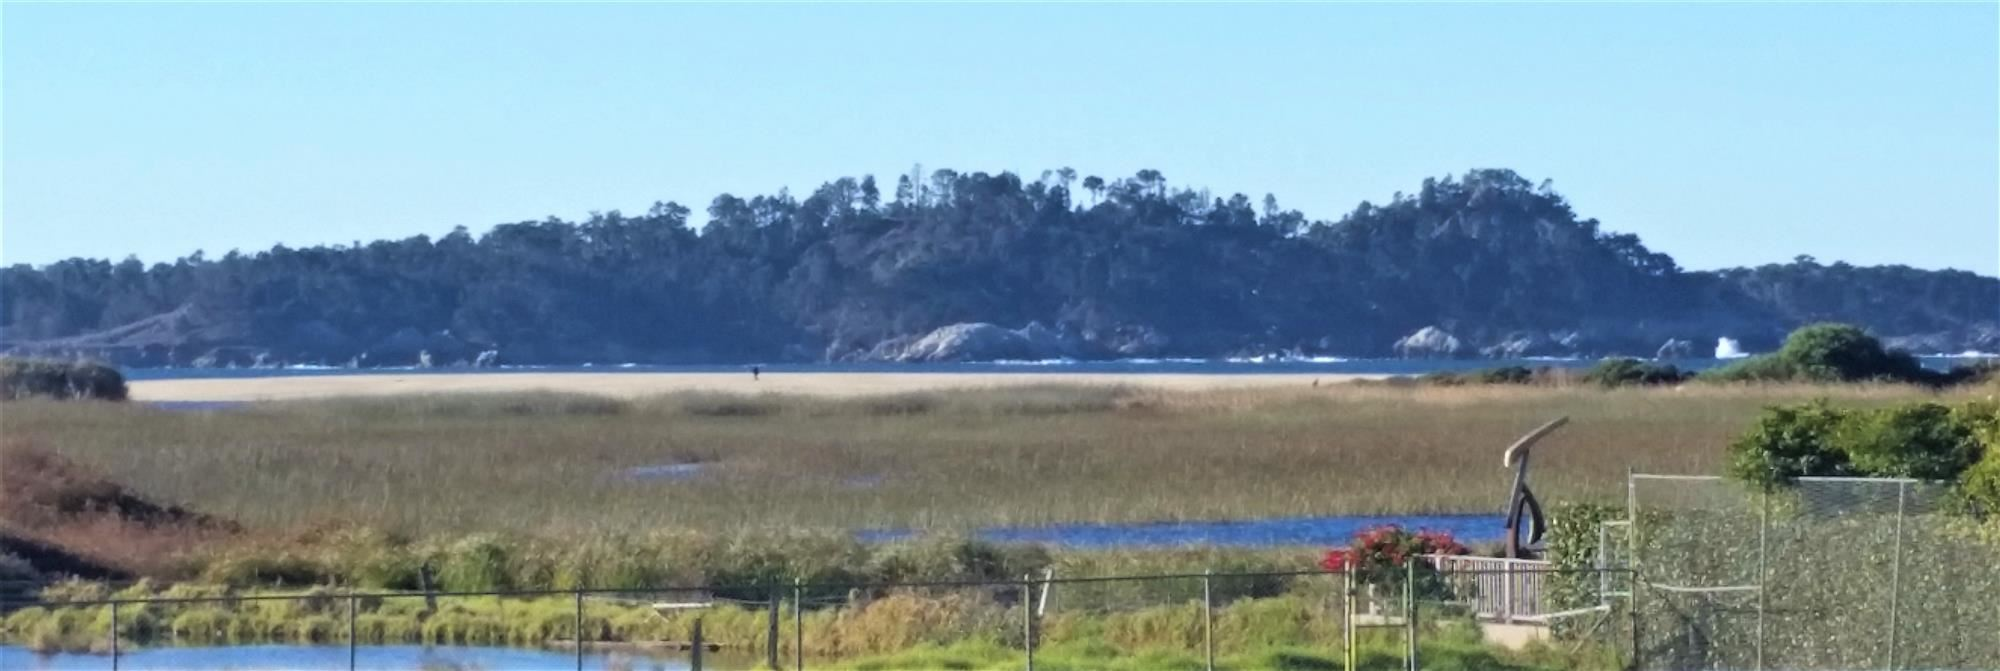 An image of Point Lobos seen across the marsh from the point of view of River School's lower field.